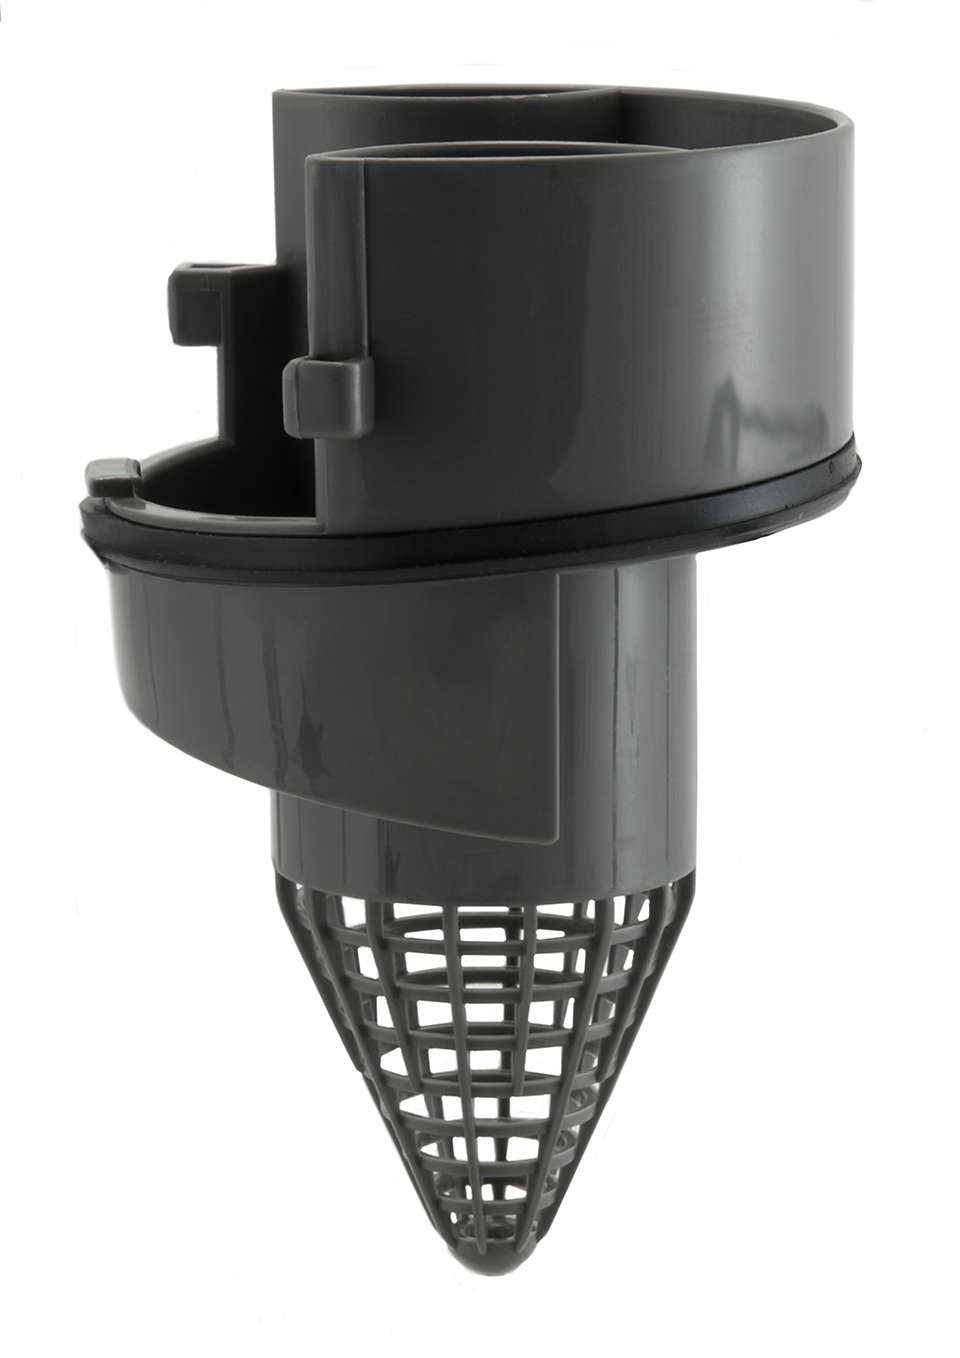 Cone assy for your bagless vacuum cleaner